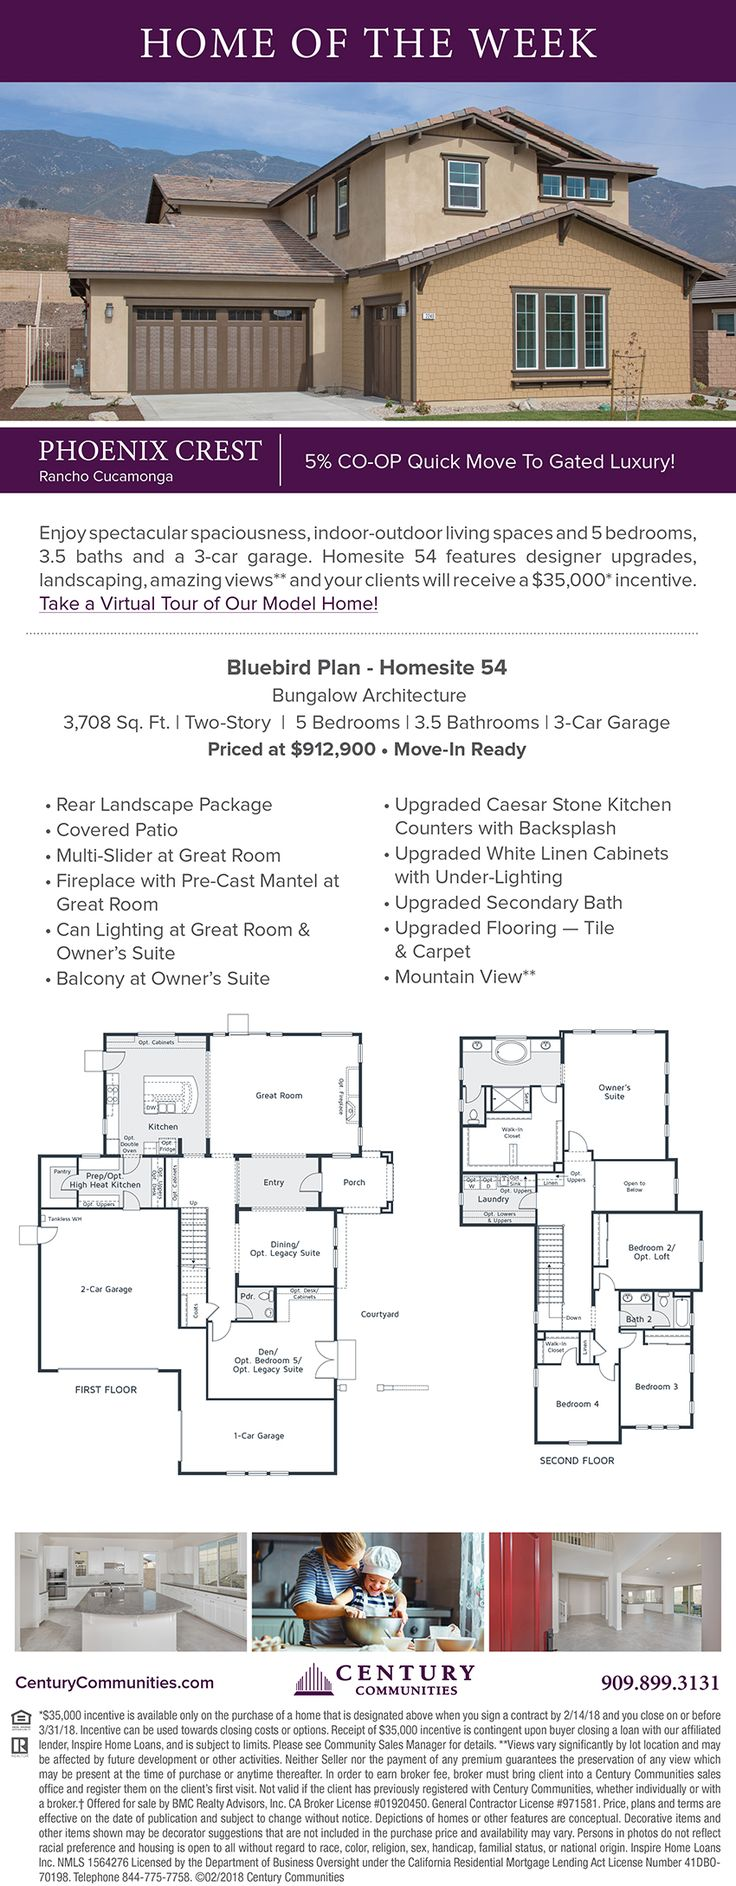 New Homes for Sale in Rancho Cucamonga, California  5% Co-Op in Rancho Cucamonga at Phoenix Crest on Homesite 54!  Brokers Welcome  |   Take a Virtual Tour of Our Model Homes  Homesite 54  |  3,708 sq. ft.  |  2-Story  |  5 Beds  |  3.5 Baths  |  3-Car Garage  |  Move-In Ready  |  $912,900  |  Mountain View  Learn More:  https://www.centurycommunities.com/find-your-home/california/southern-california/rancho-cucamonga/phoenix-crest/12240-alamo-drive